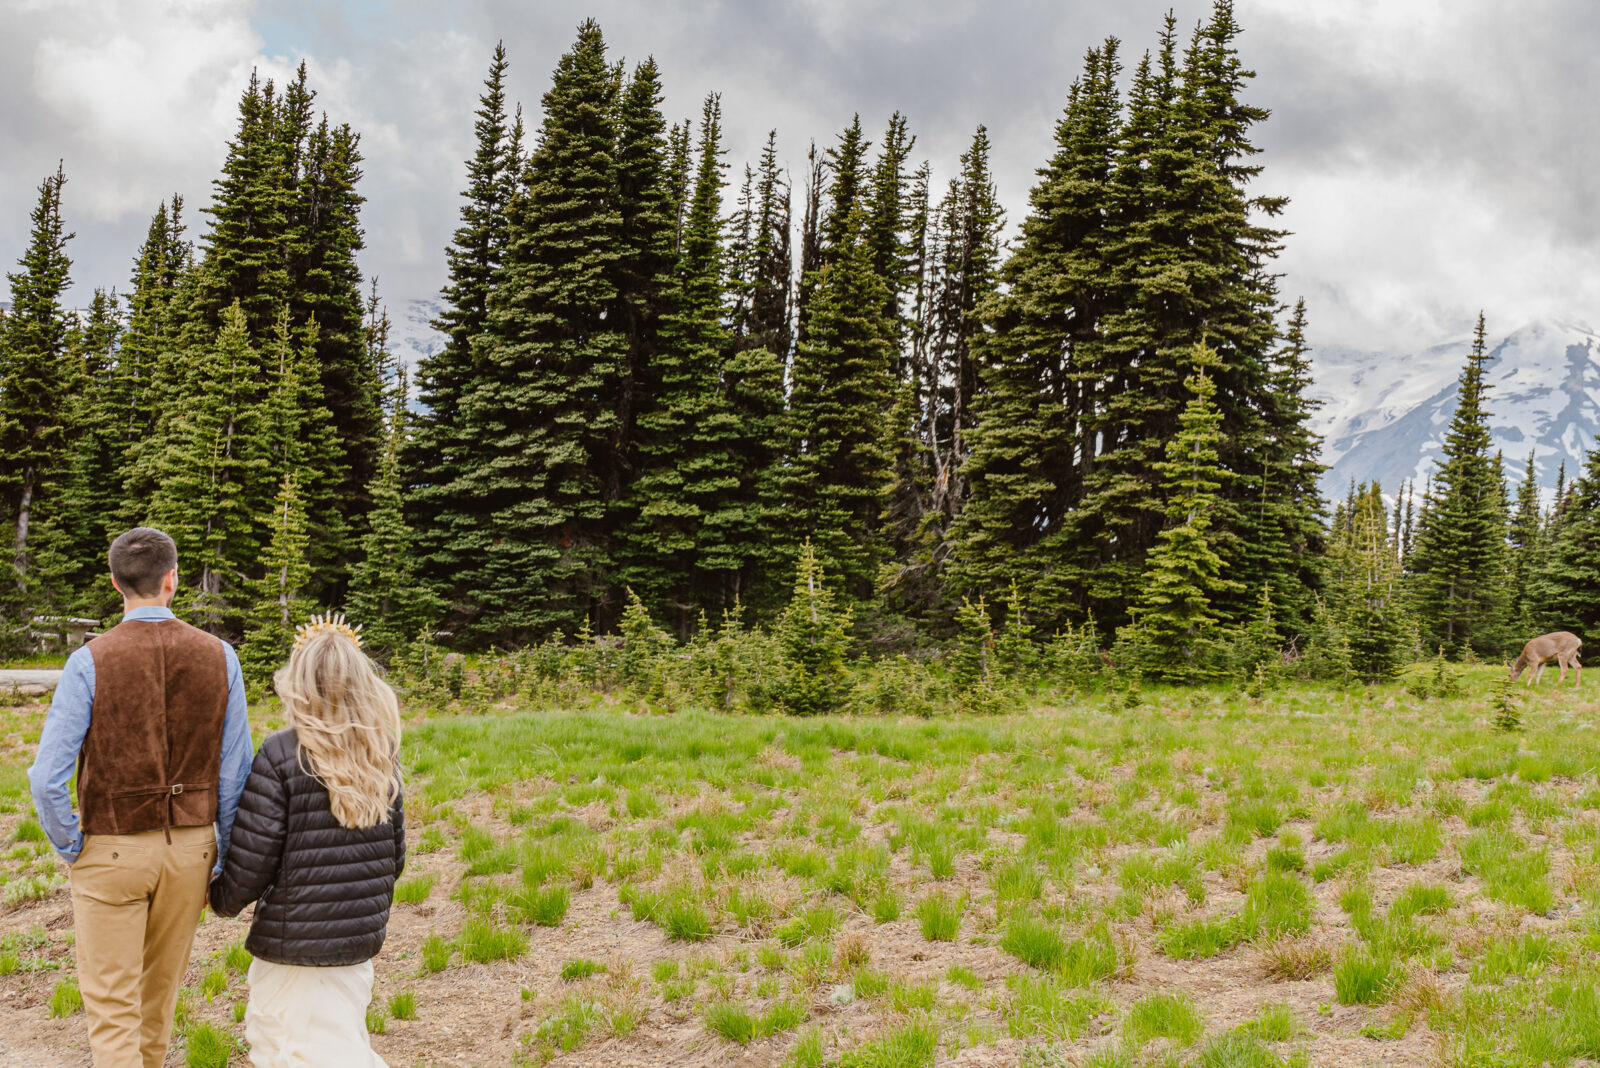 Couple eloping in Mount Rainier National Park watches deer feed in the field